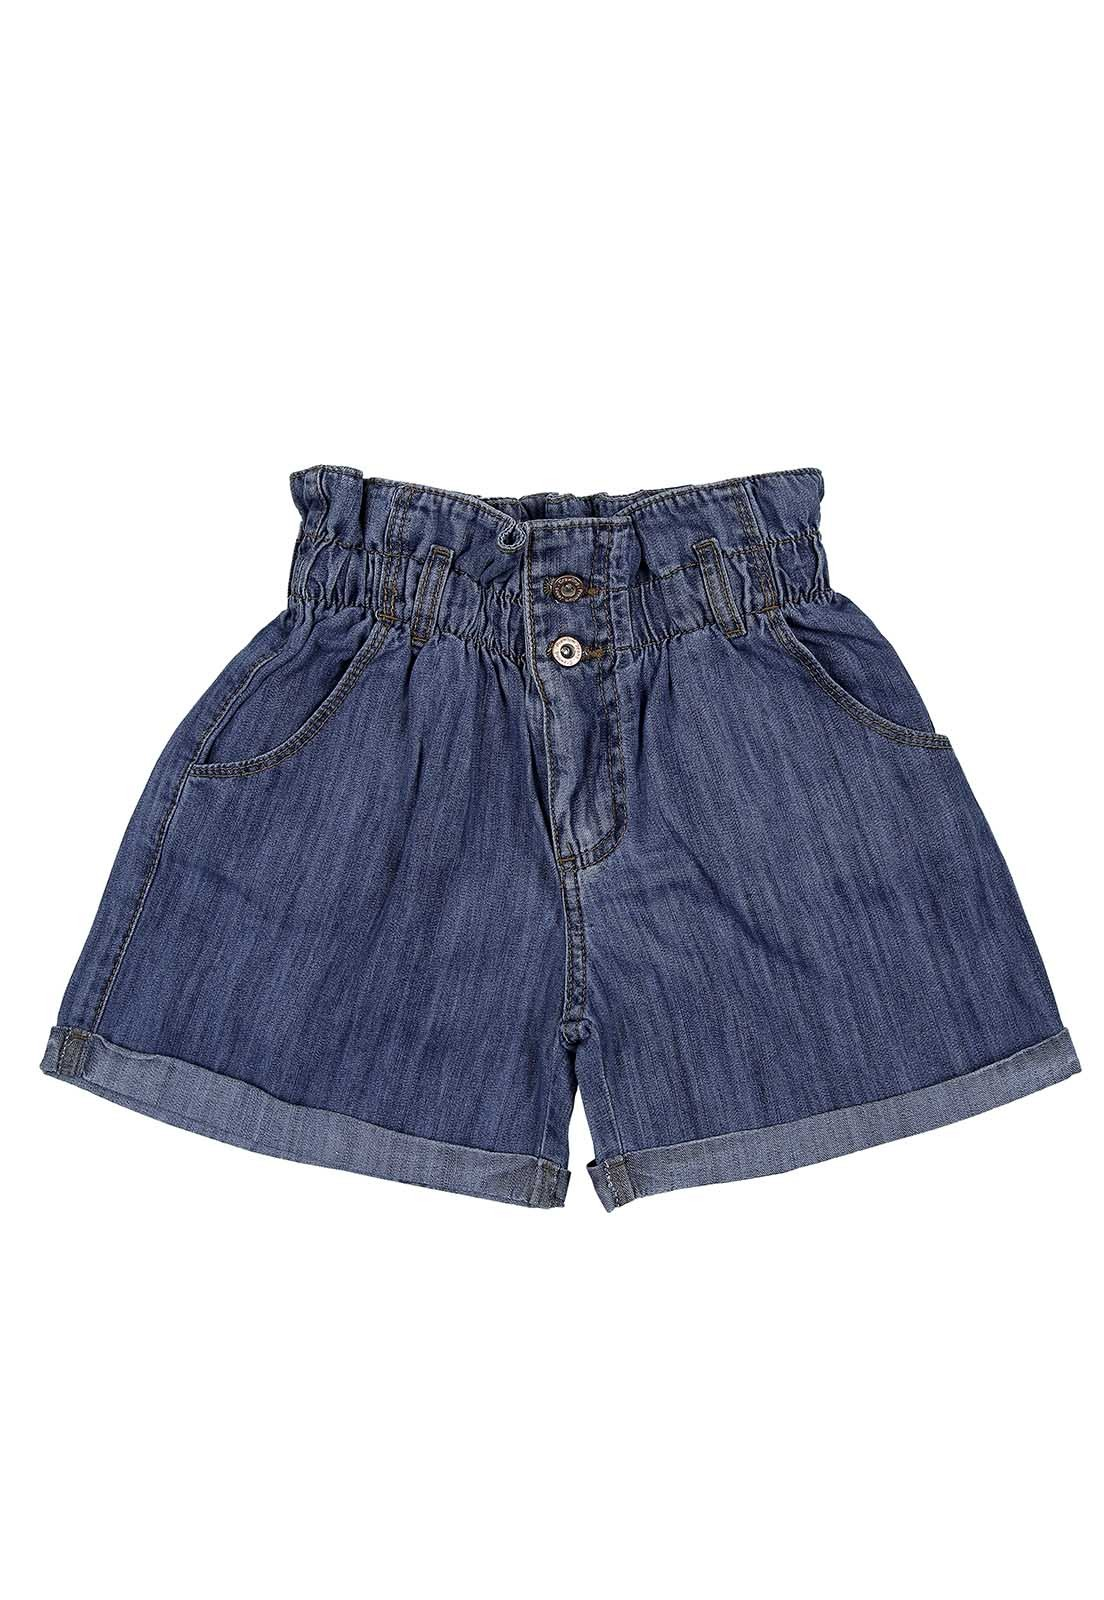 Short Jeans Feminino Clochard